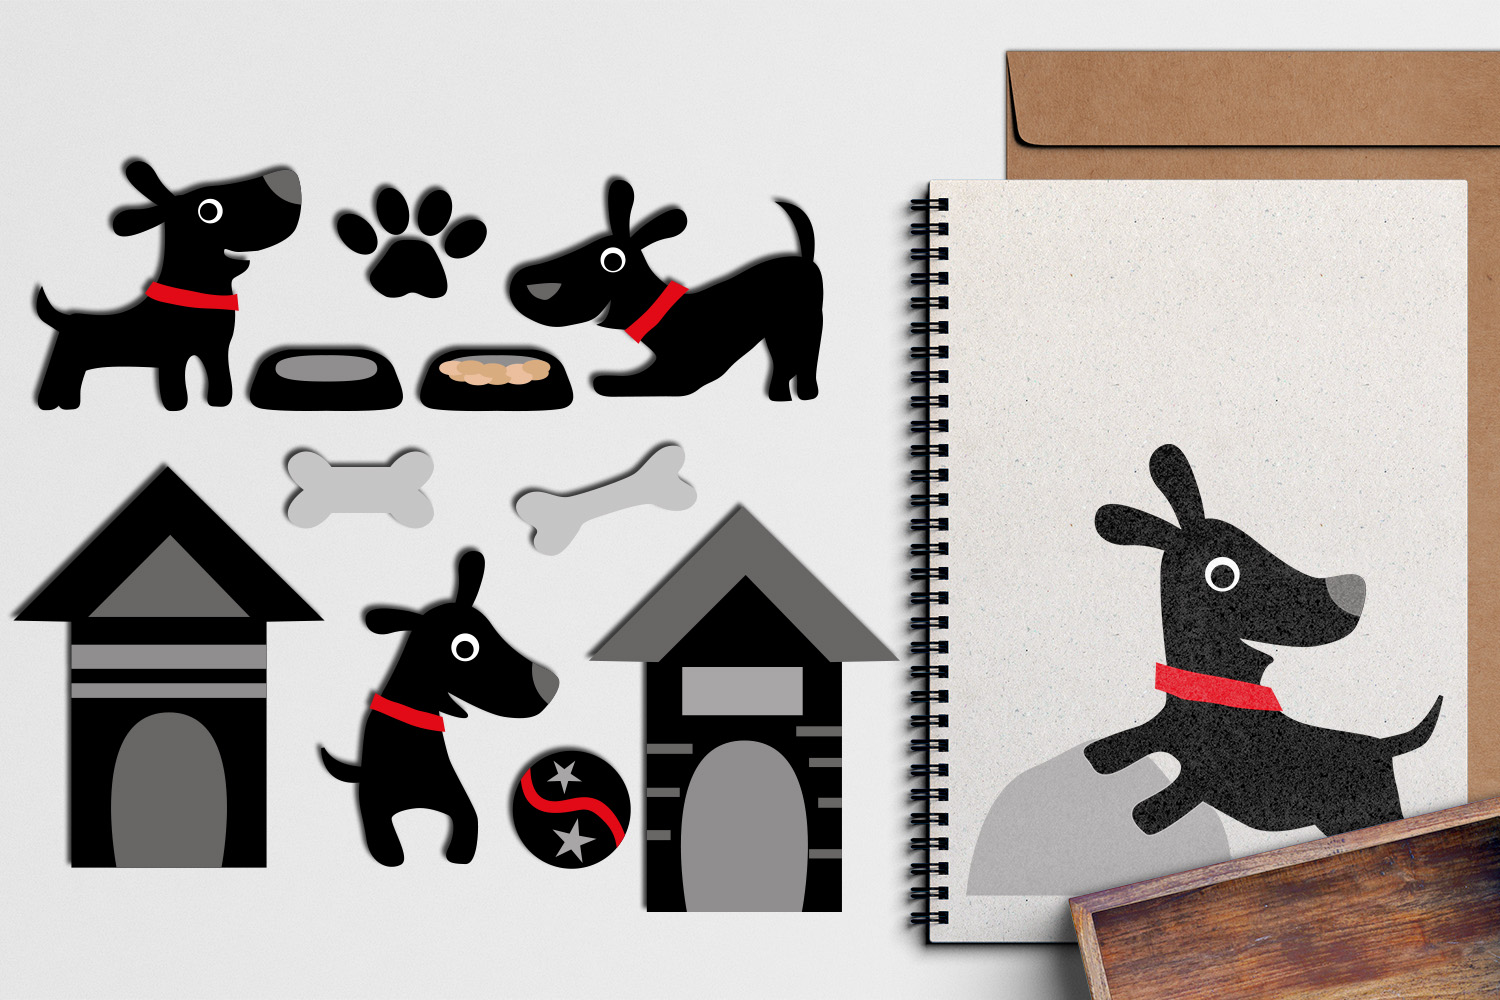 Download Free Black Dog Graphic By Revidevi Creative Fabrica for Cricut Explore, Silhouette and other cutting machines.